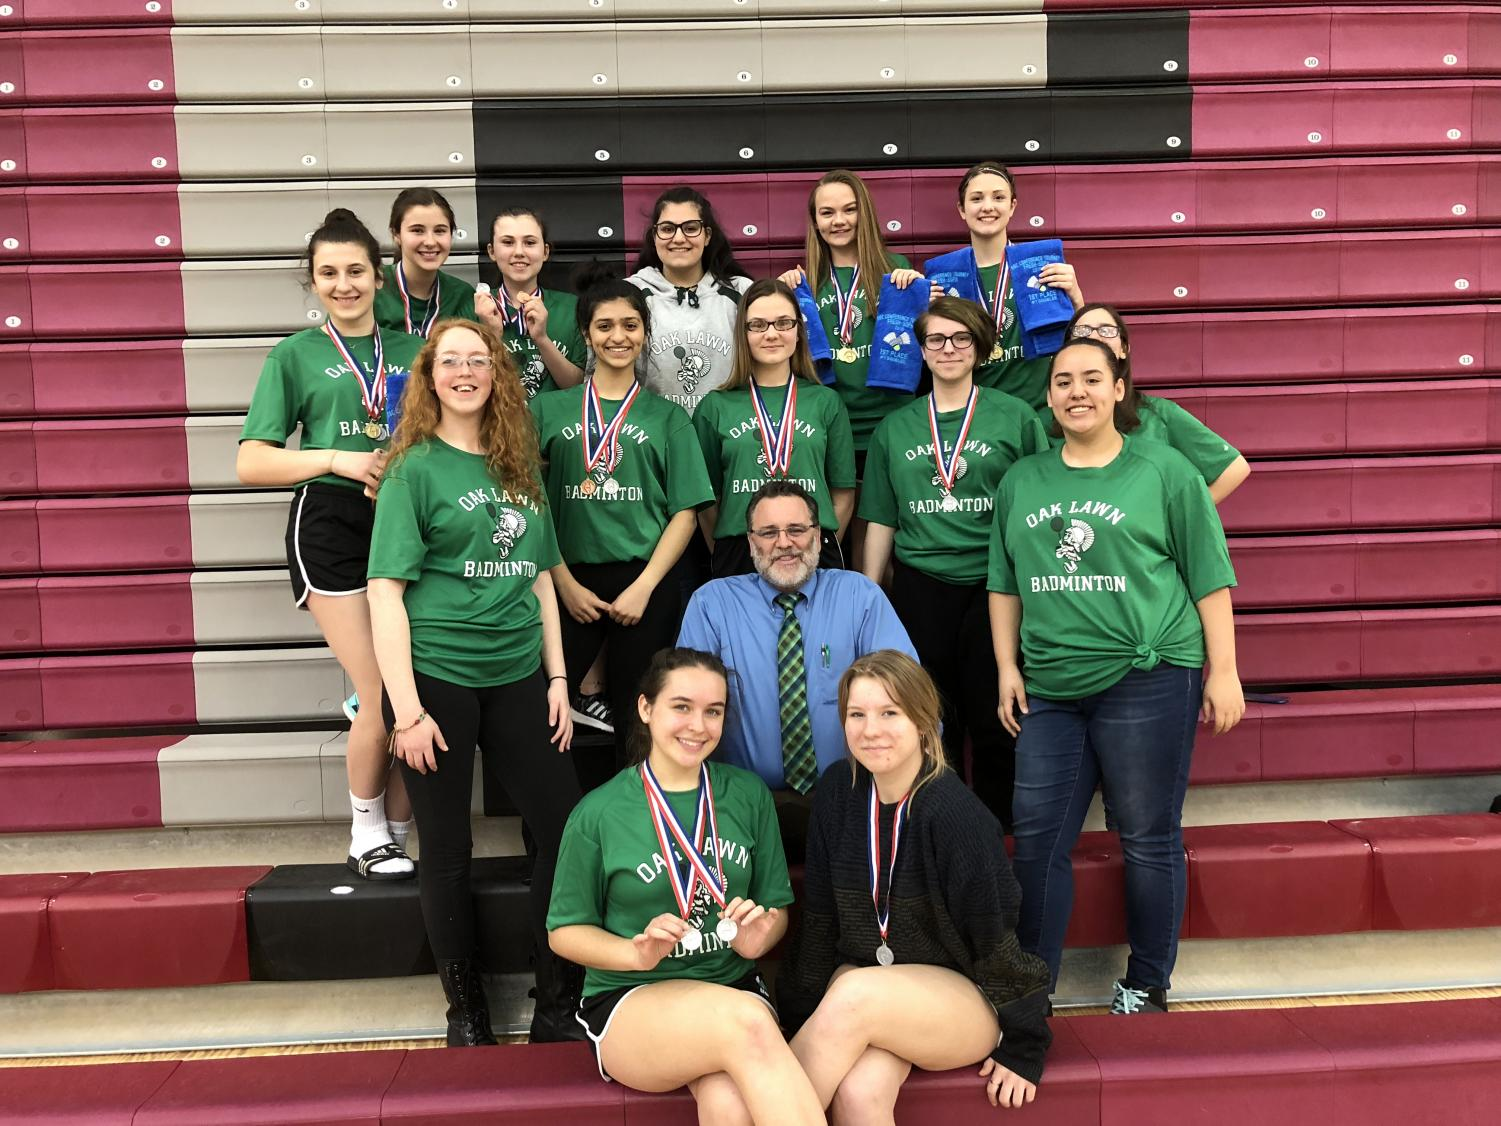 2018 Girls' Sophomore Badminton Team